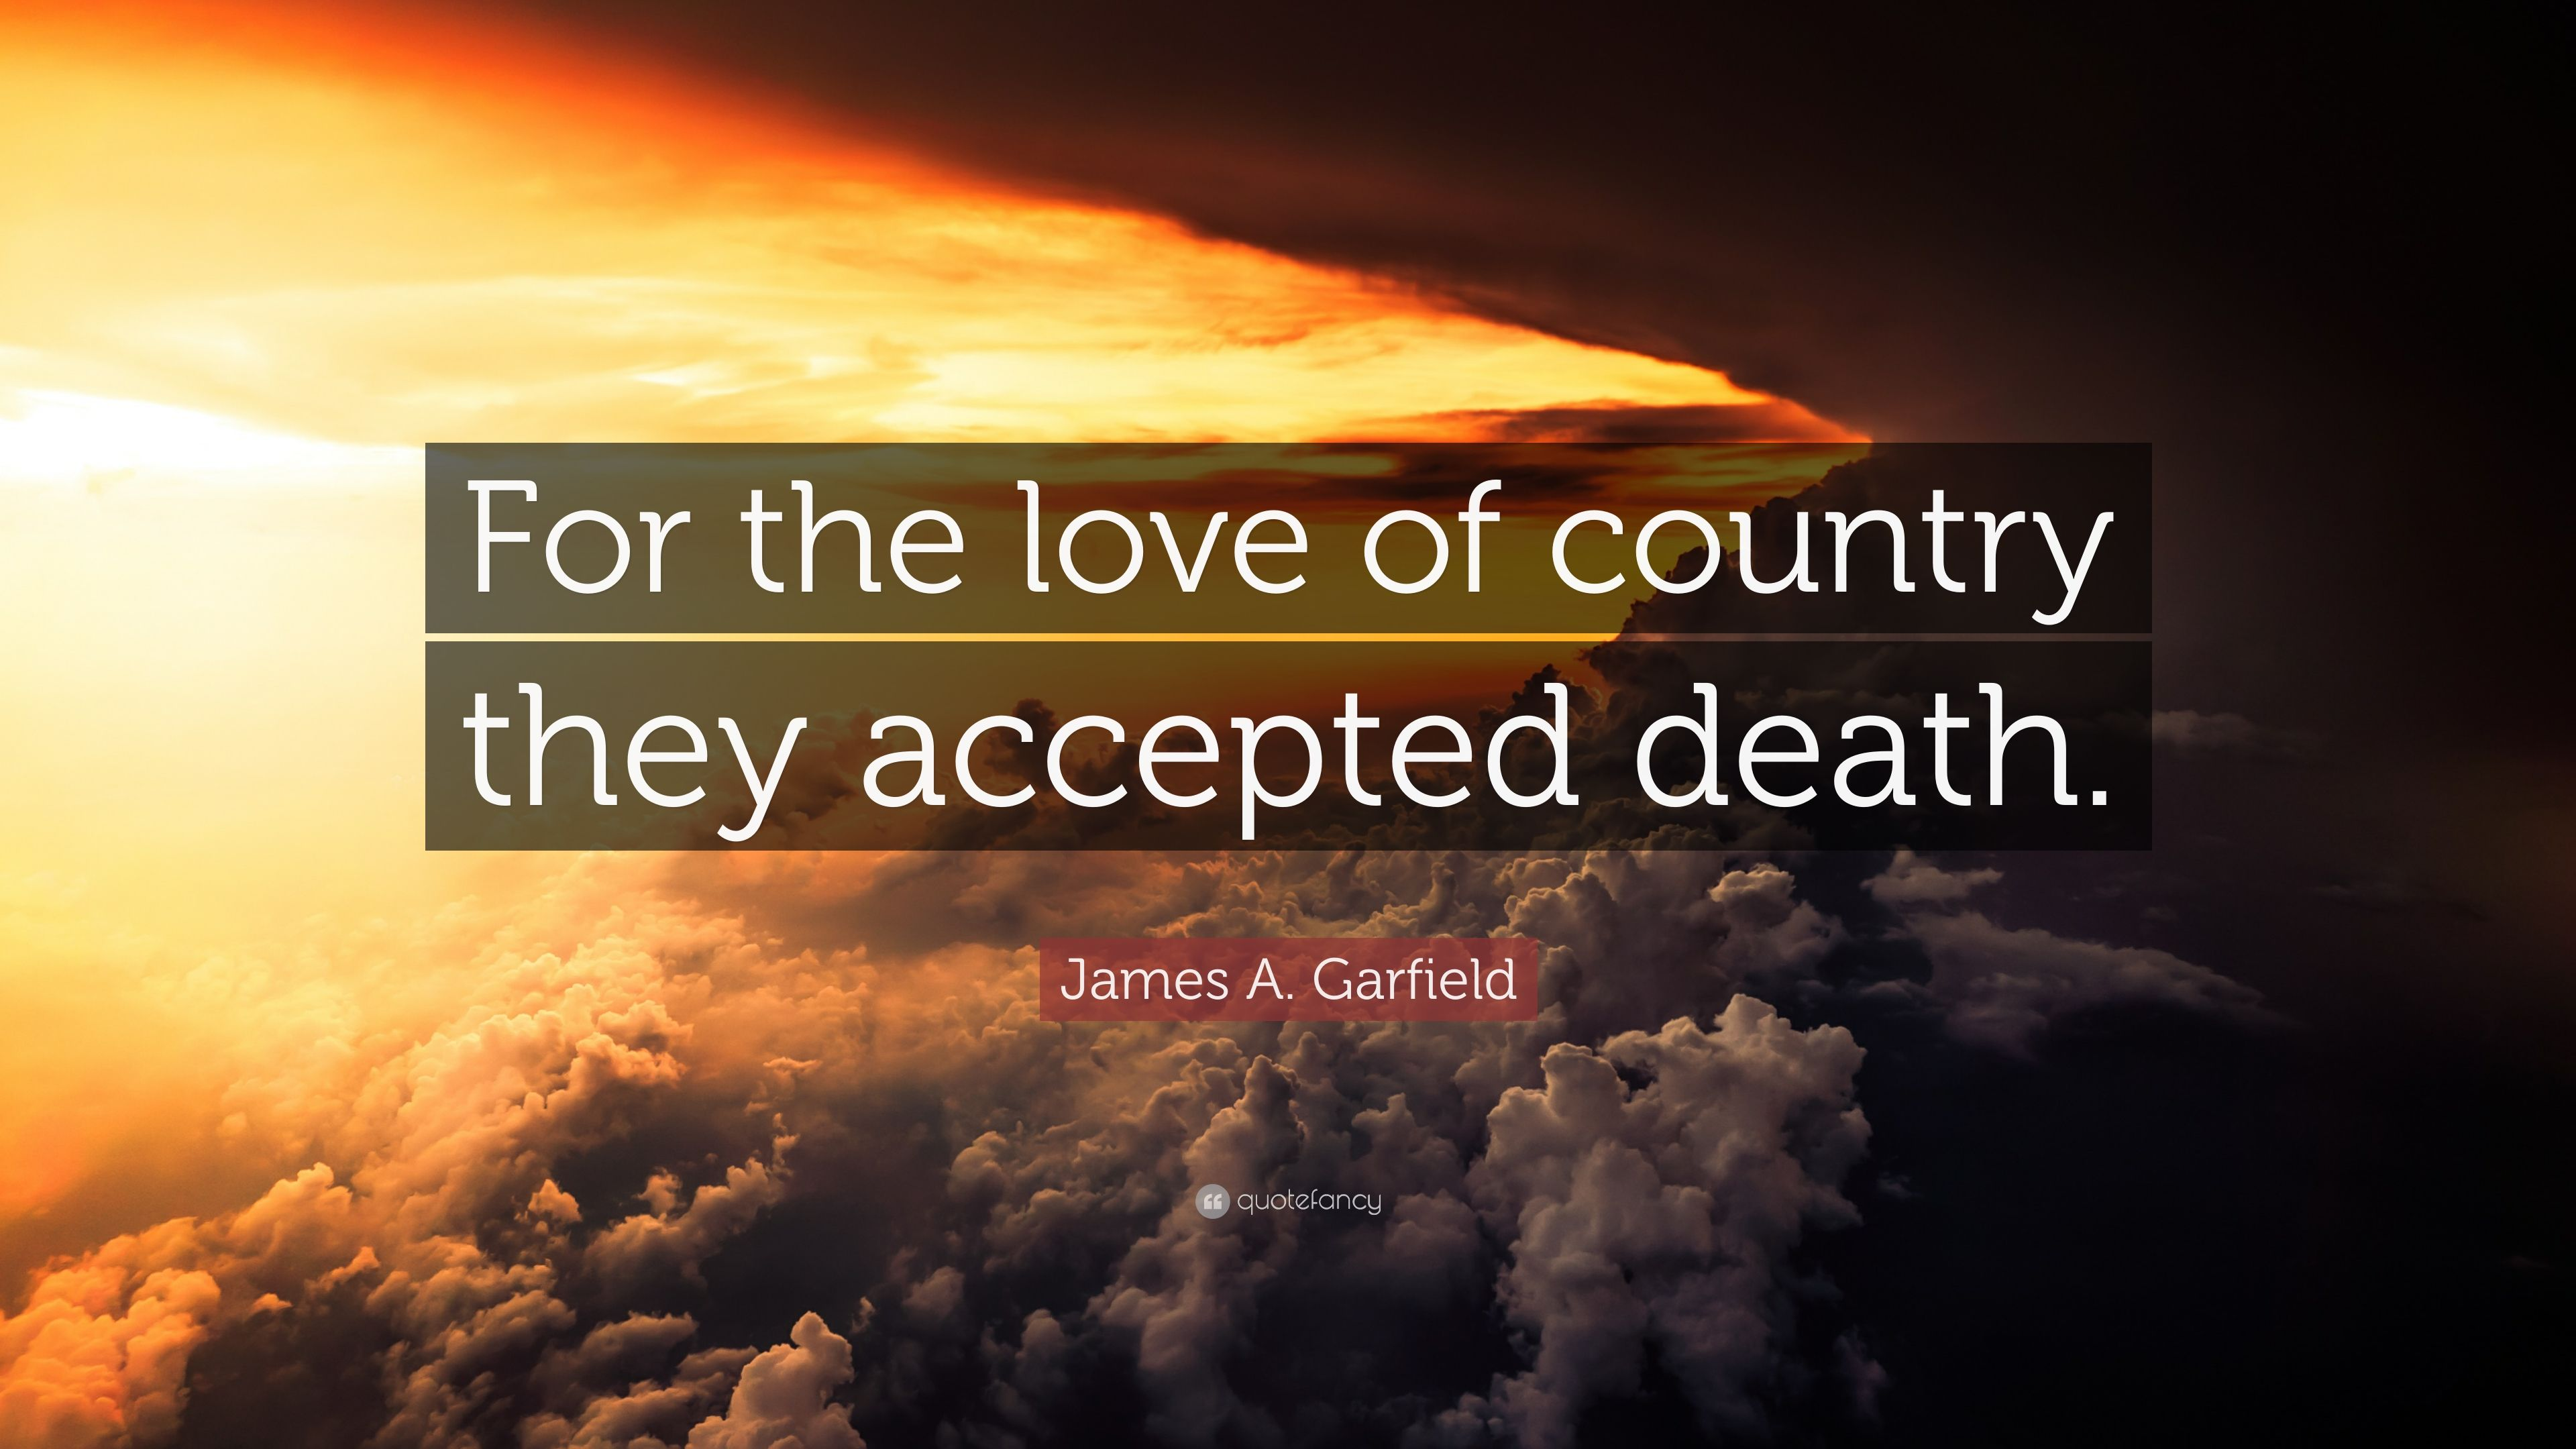 James A Garfield Quote For The Love Of Country They Accepted Death